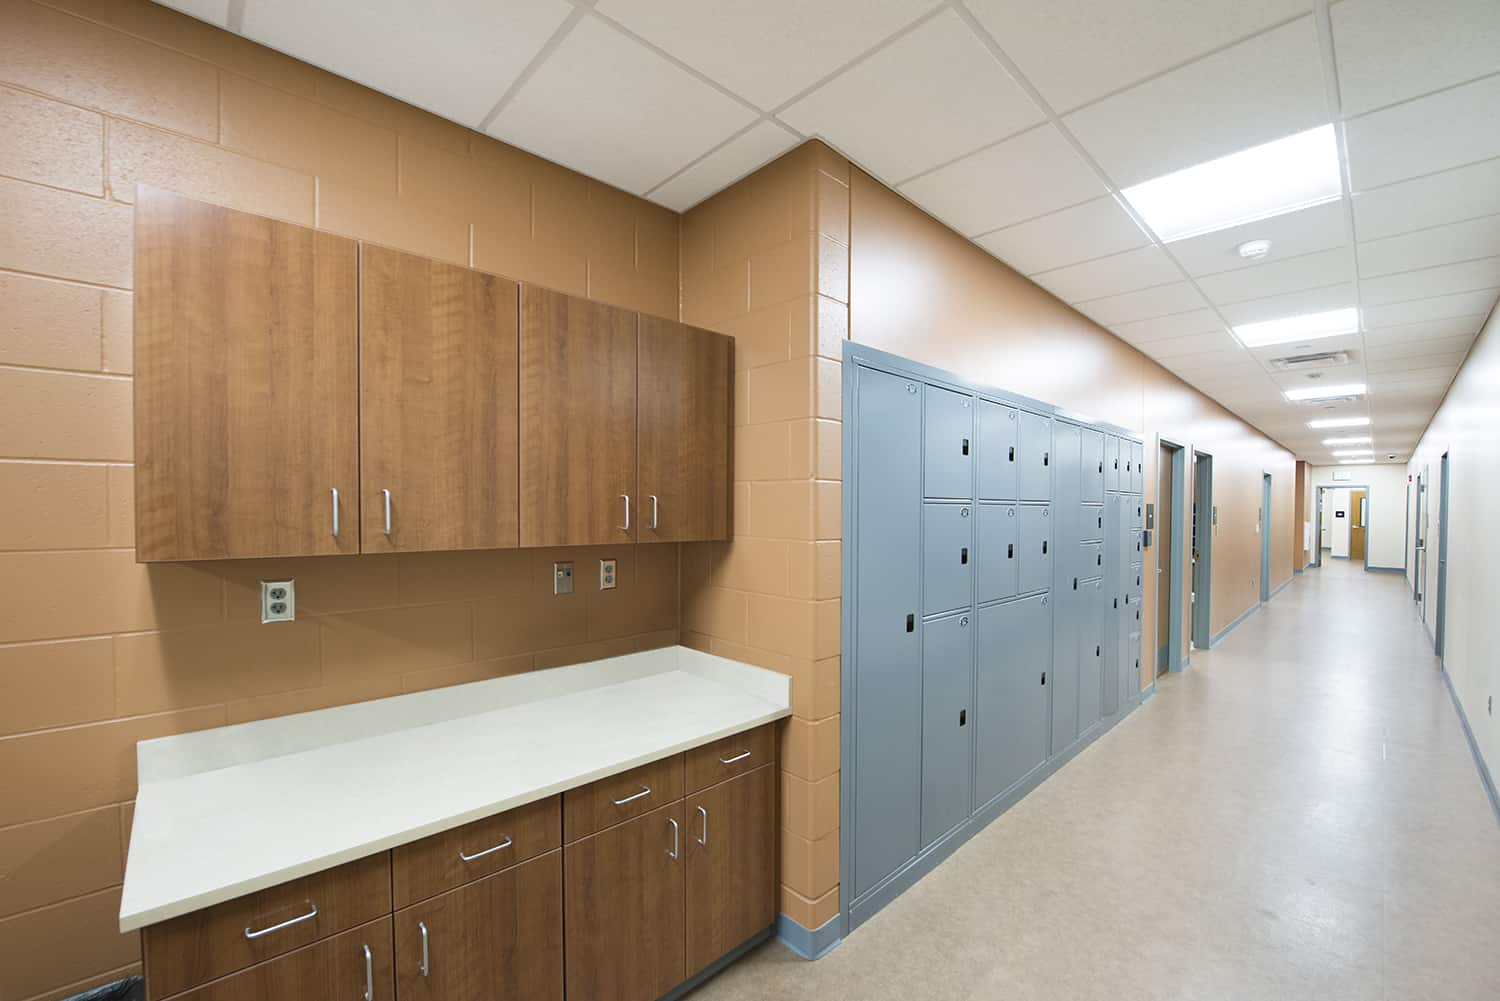 Staff corridor with touchdown workstation and evidence storage lockers.